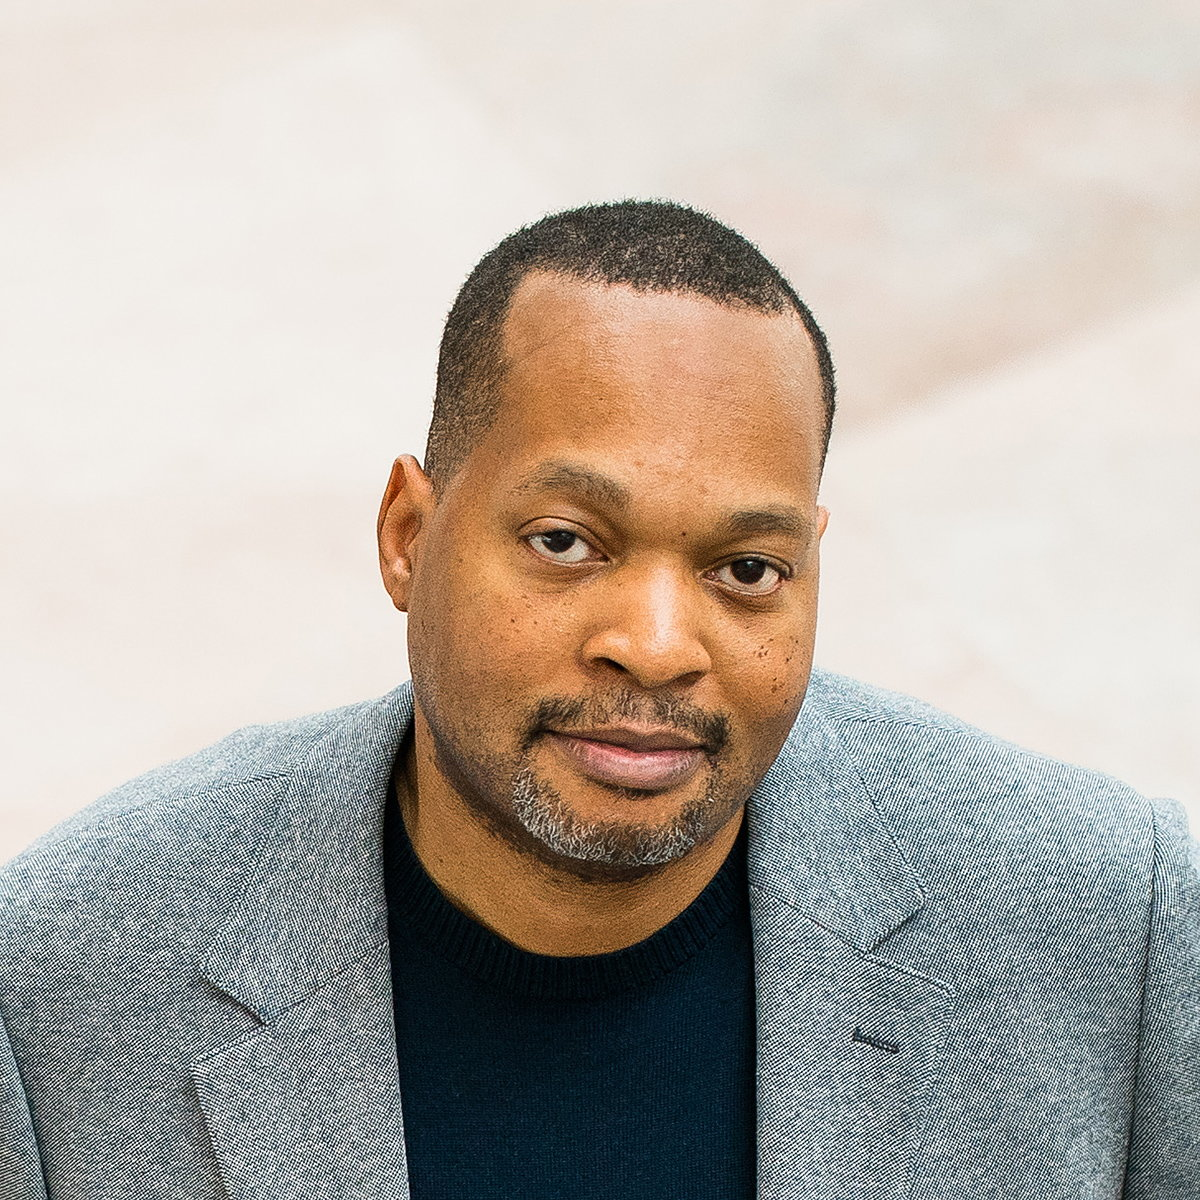 Bennie F. Johnson Takes the Helm of AIGA as Executive Director